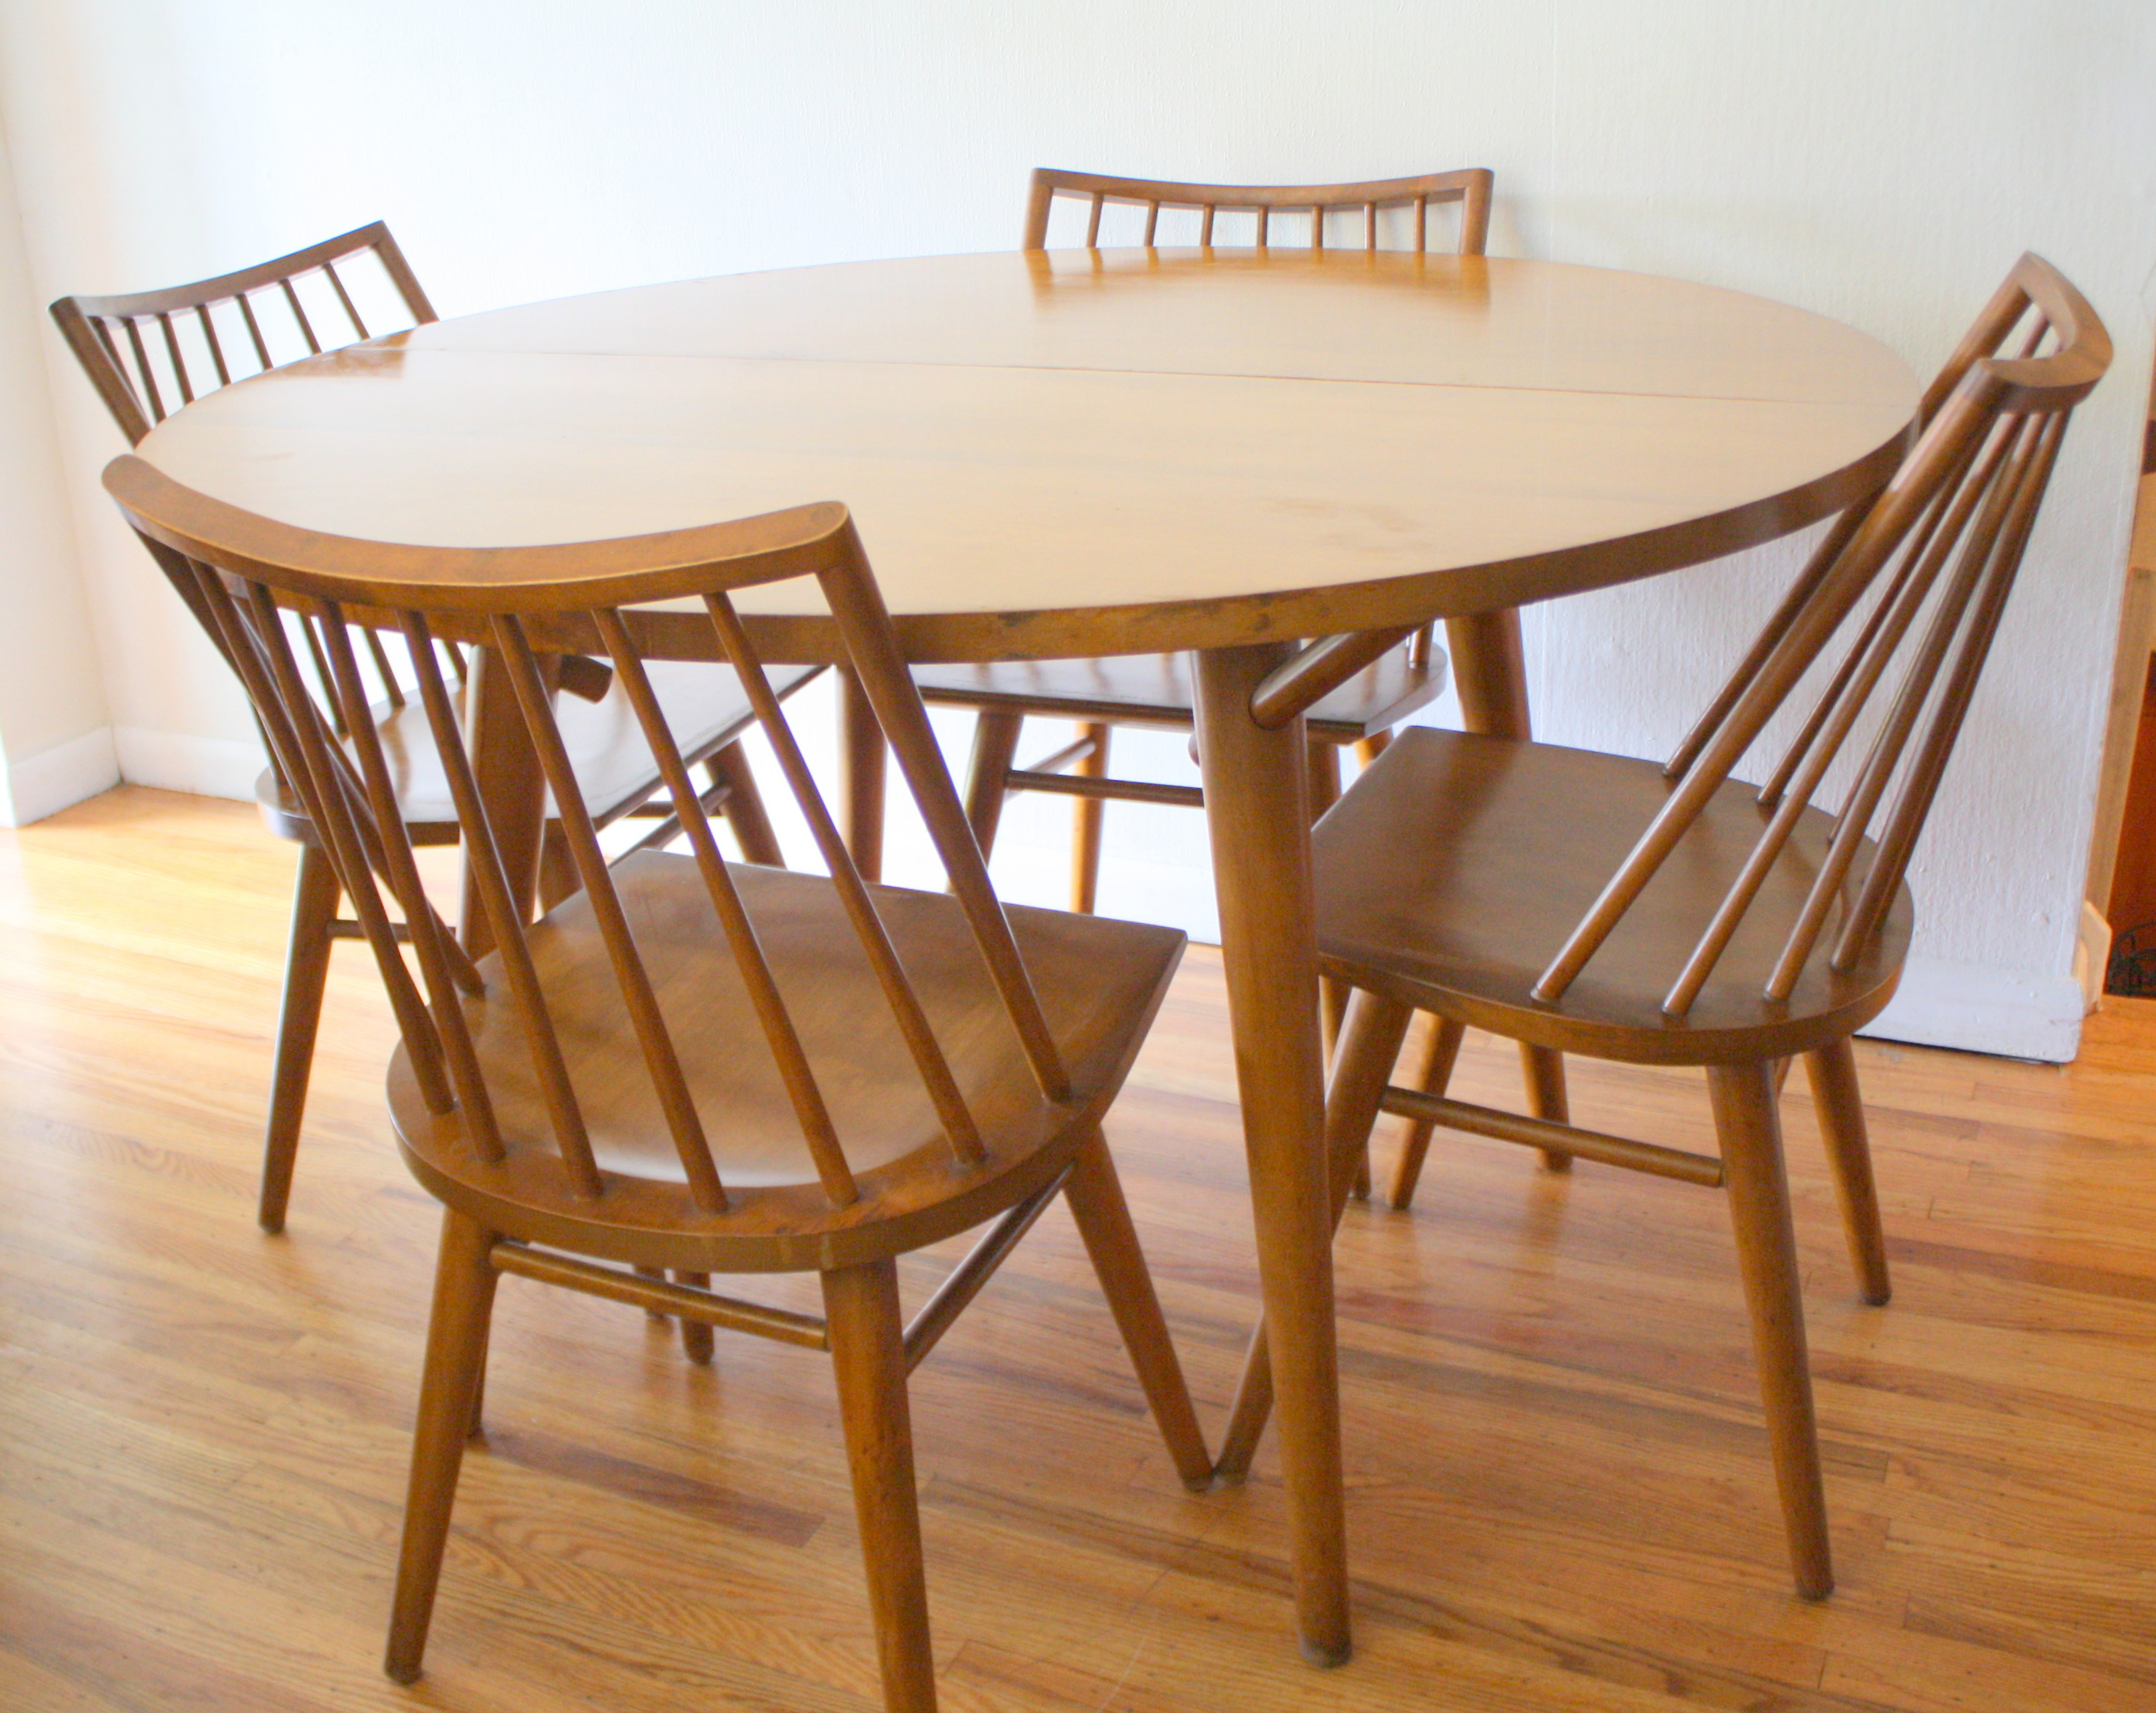 mid century modern dining table and chairs by russel wright for conant ball mid century kitchen table Conant ball dining set 1